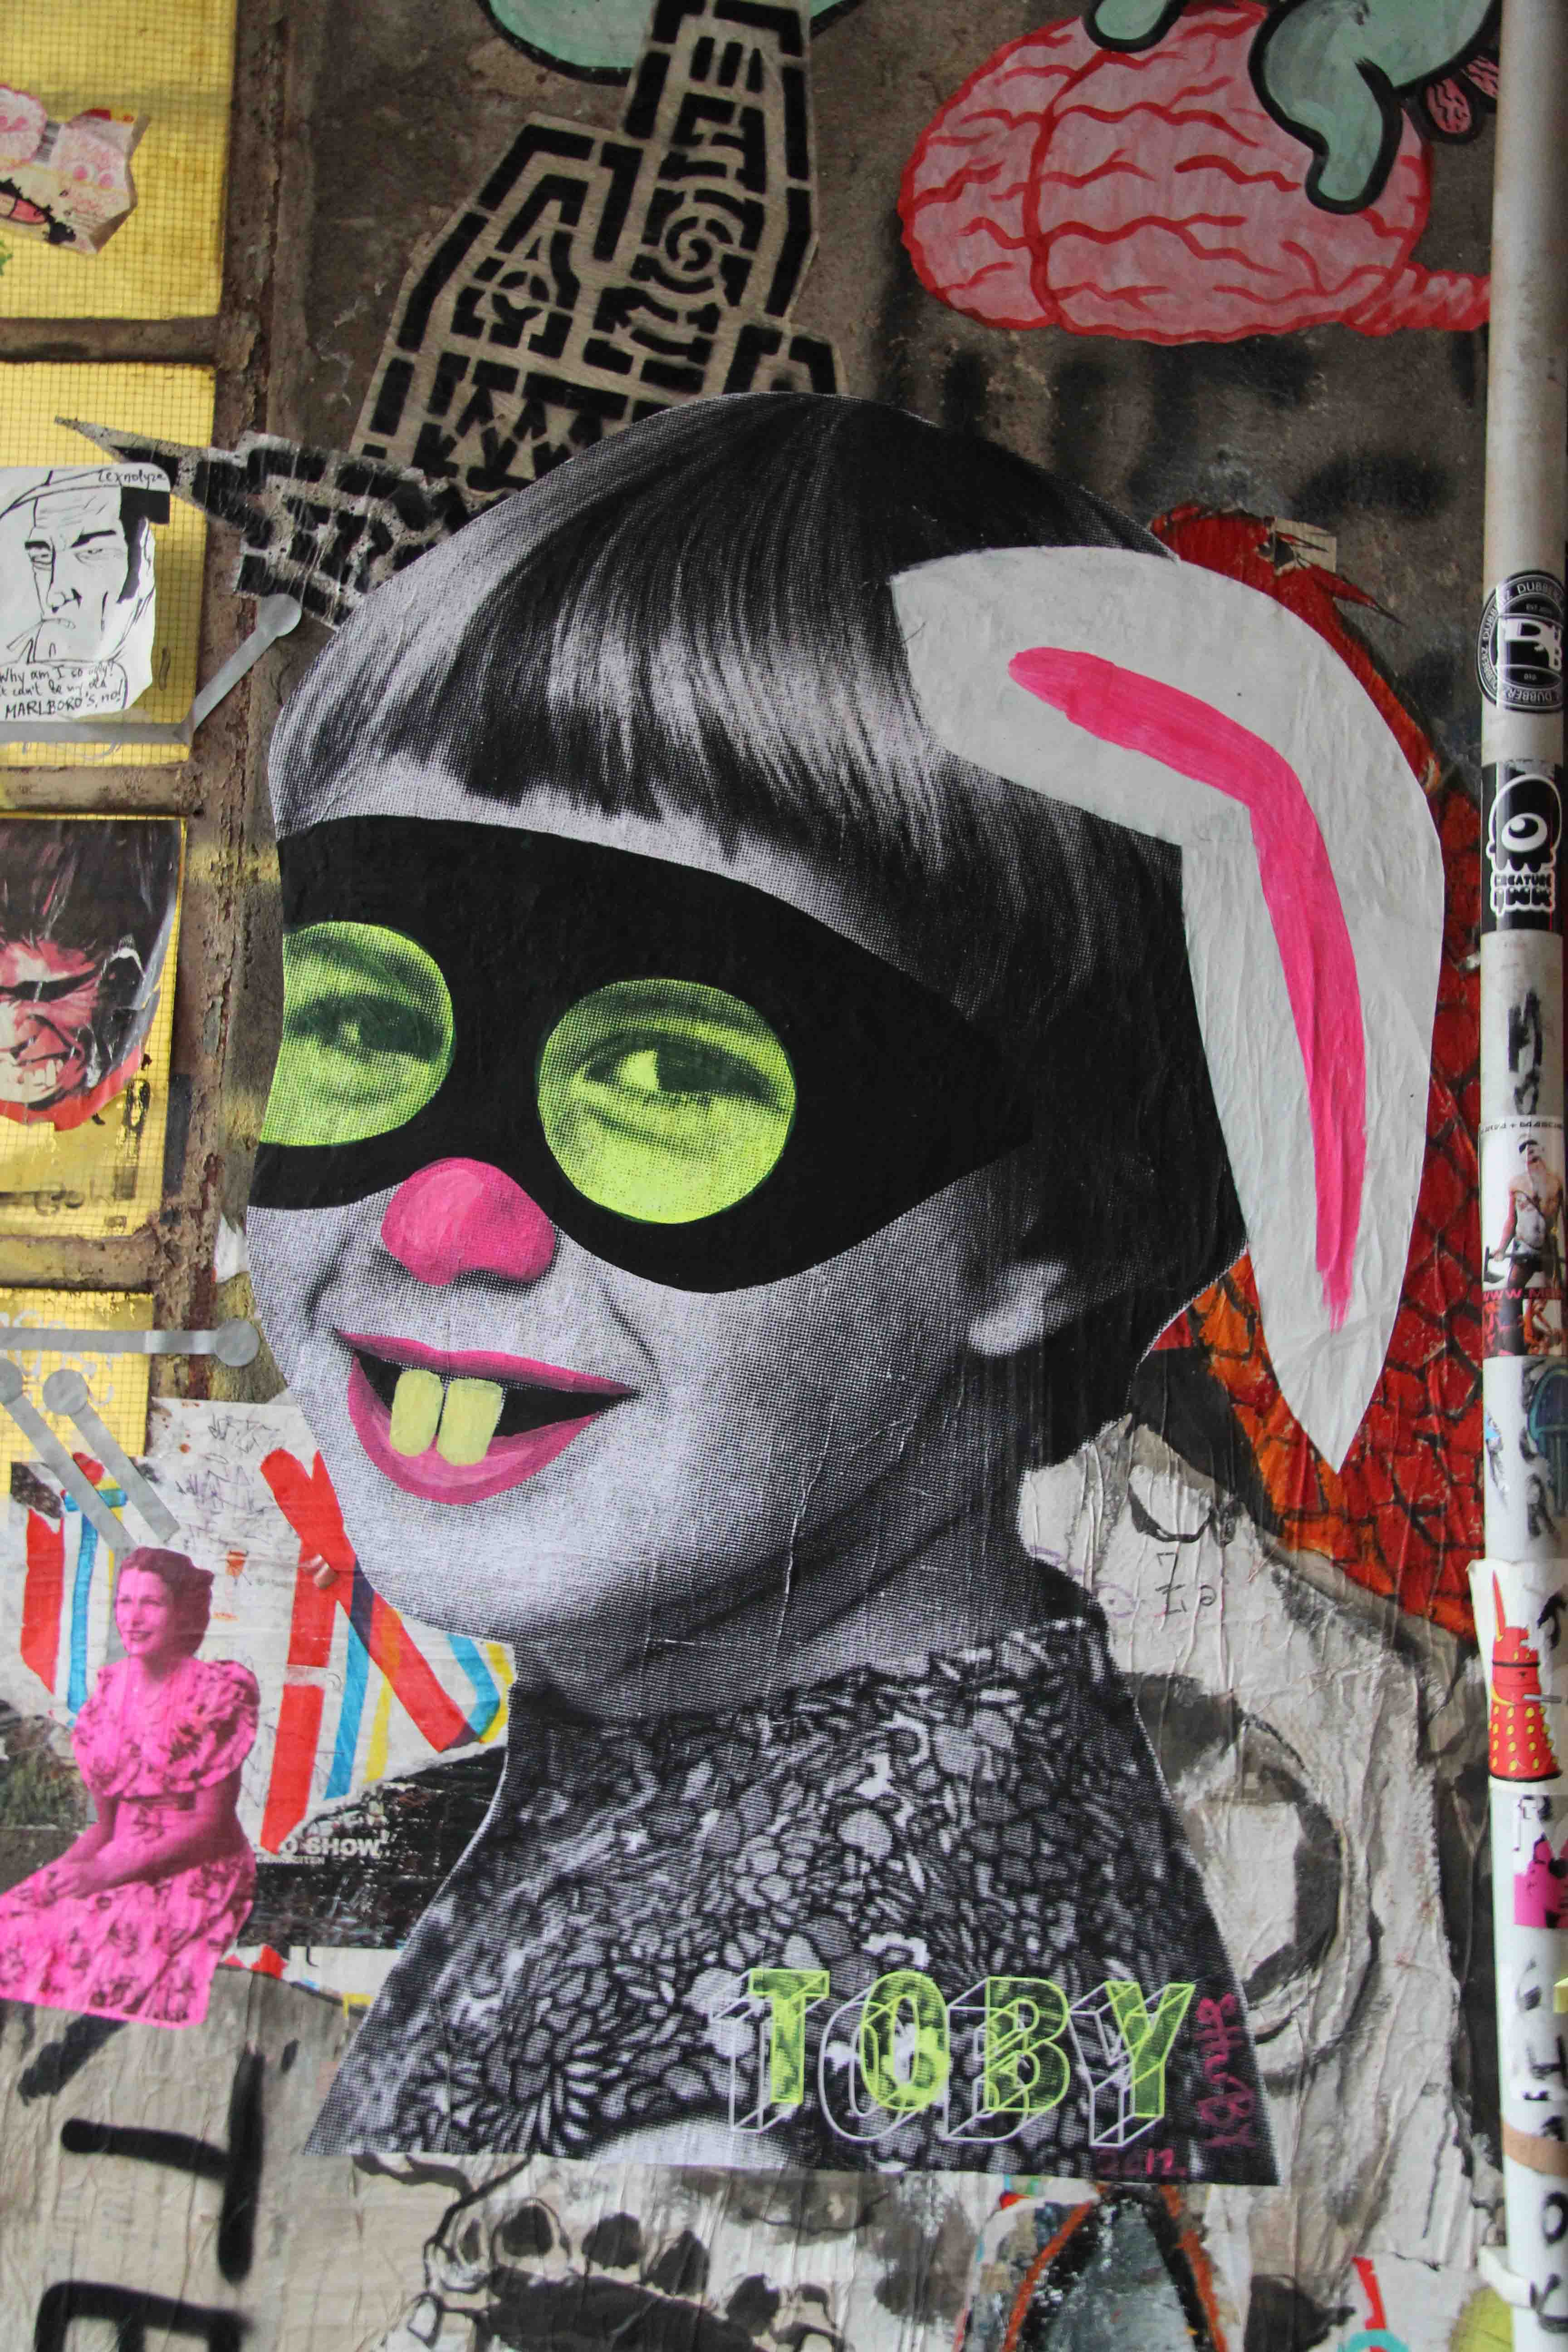 Funny Girl / Bunny Girl - Street Art by TOBY in Berlin